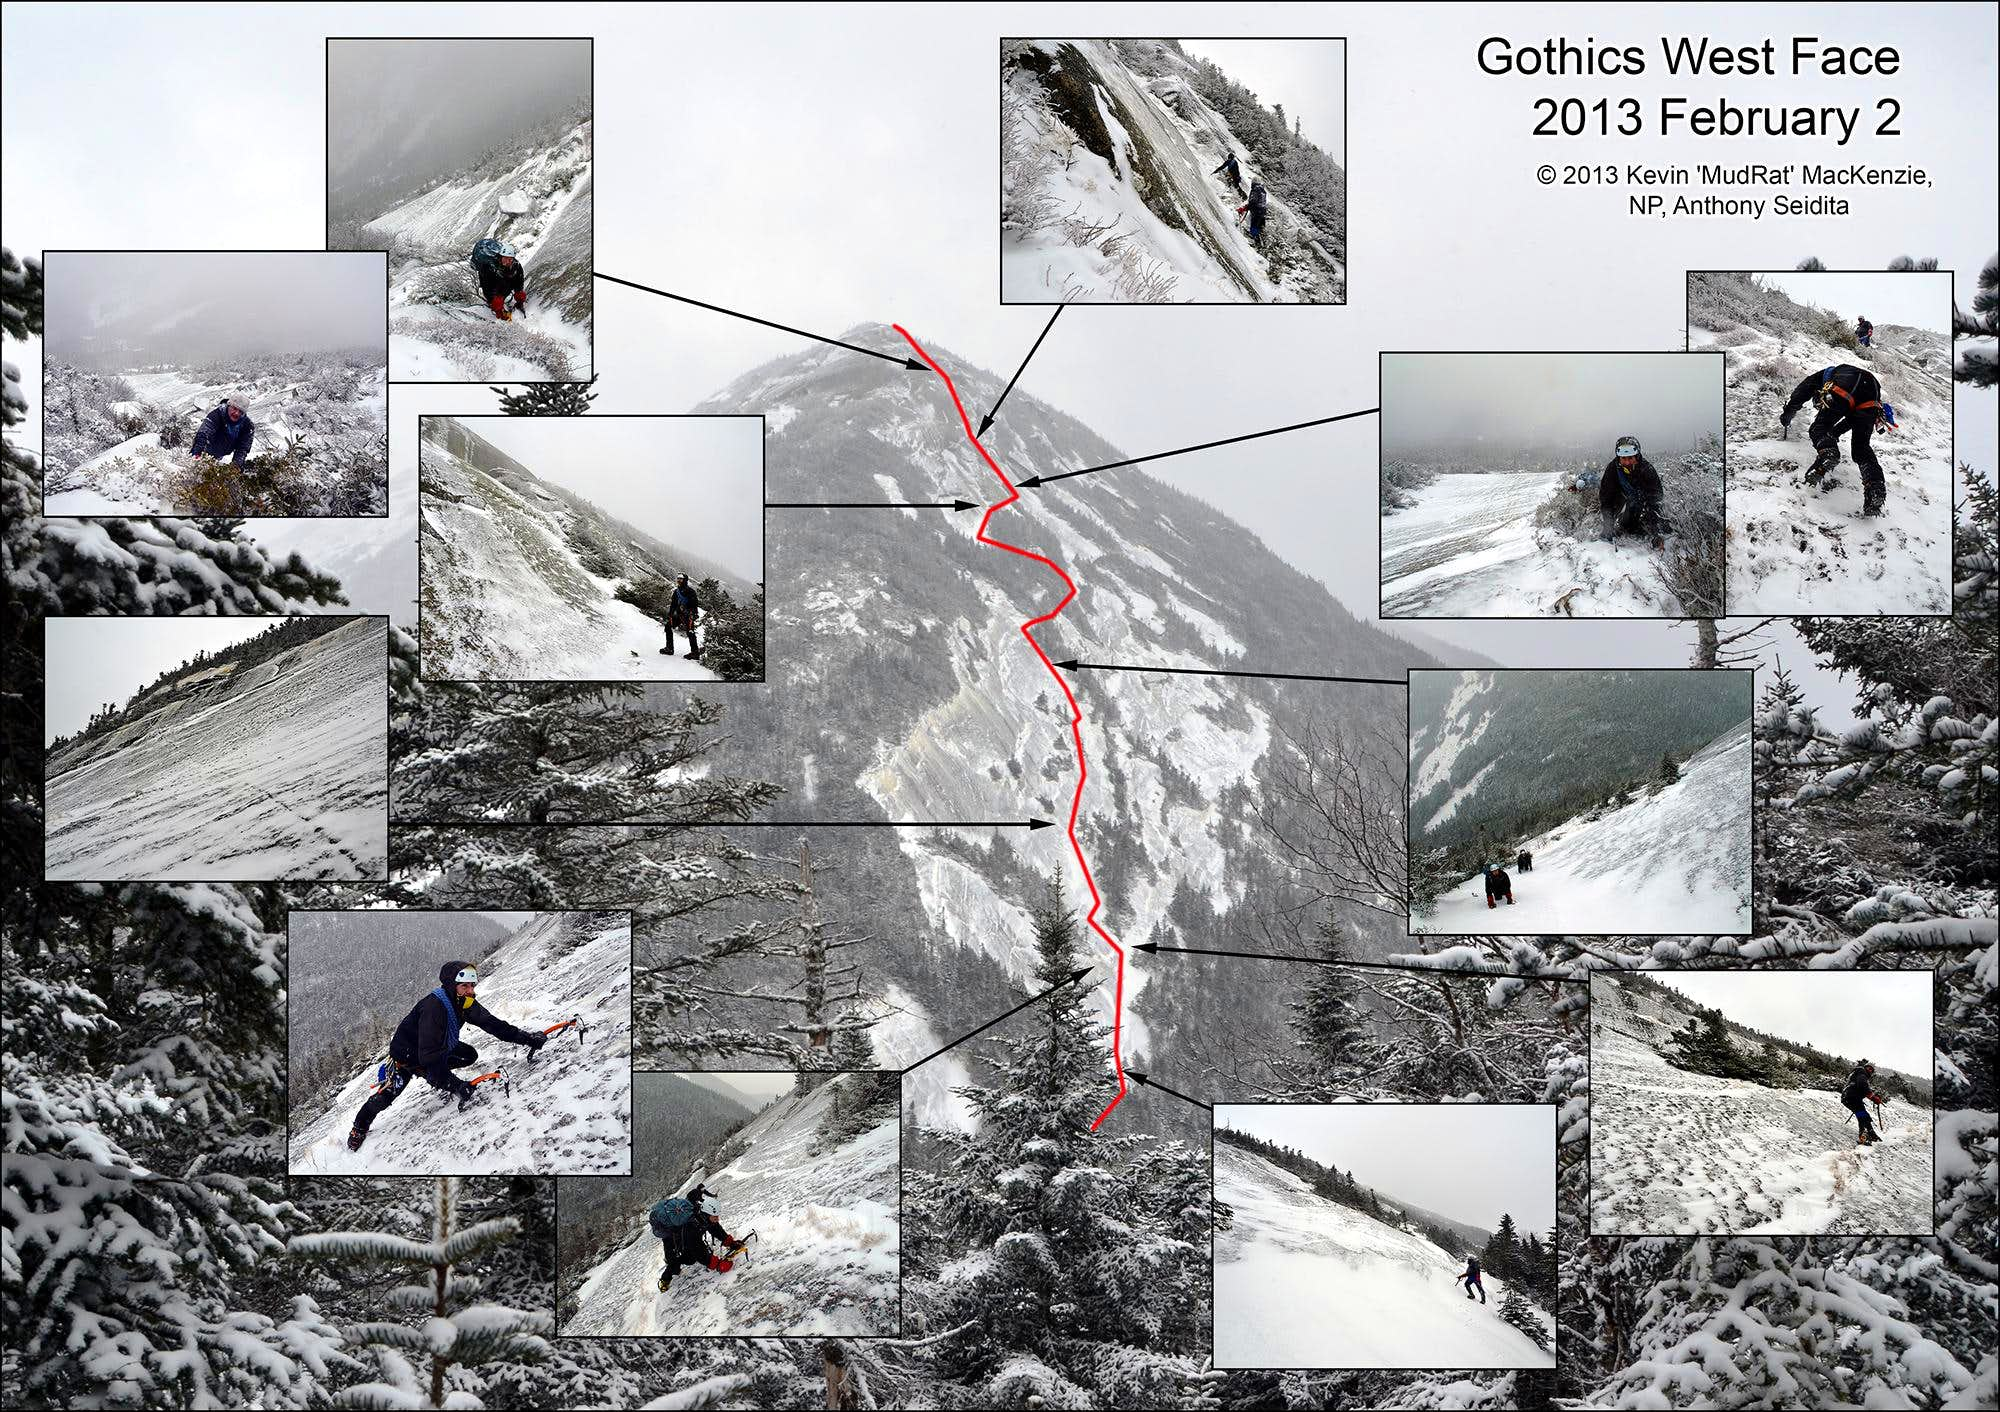 Winter on Gothics West Face and Saddleback\'s Catastrophic Chaos Slide